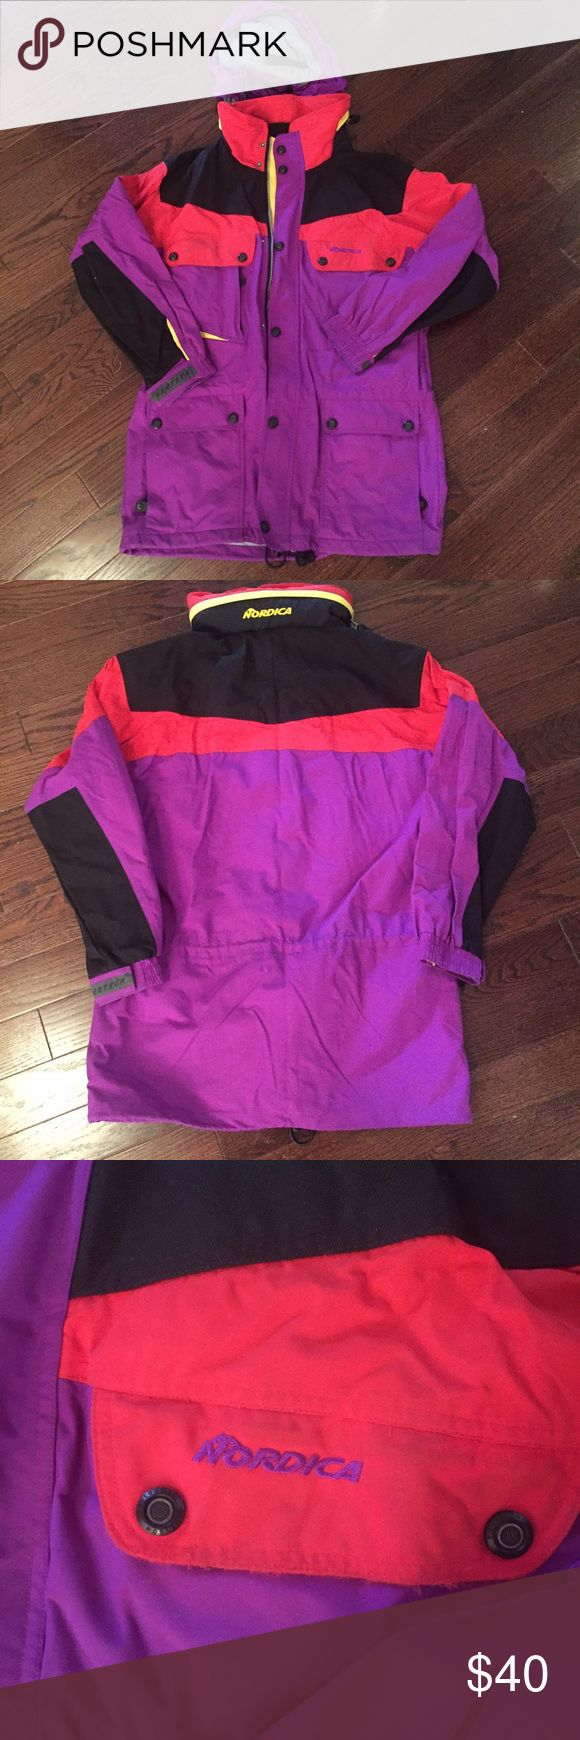 """Vintage Nordica ski shell Nordica ski and snowboard shell in red, yellow, black and purple. Drawcord at waist, hits below hip to keep you warm. Tons of zip and snap pockets. Grey mesh and nylon lining. Size is men's medium, fits like a women's XL with plenty of space underneath for a sweater and fleece. 32"""" shoulder to hem, 22"""" side to side at waist, 22"""" sleeve length. Good used condition with some fraying on edges (not noticeable, see third photo) and some dust from storage, price reflects…"""